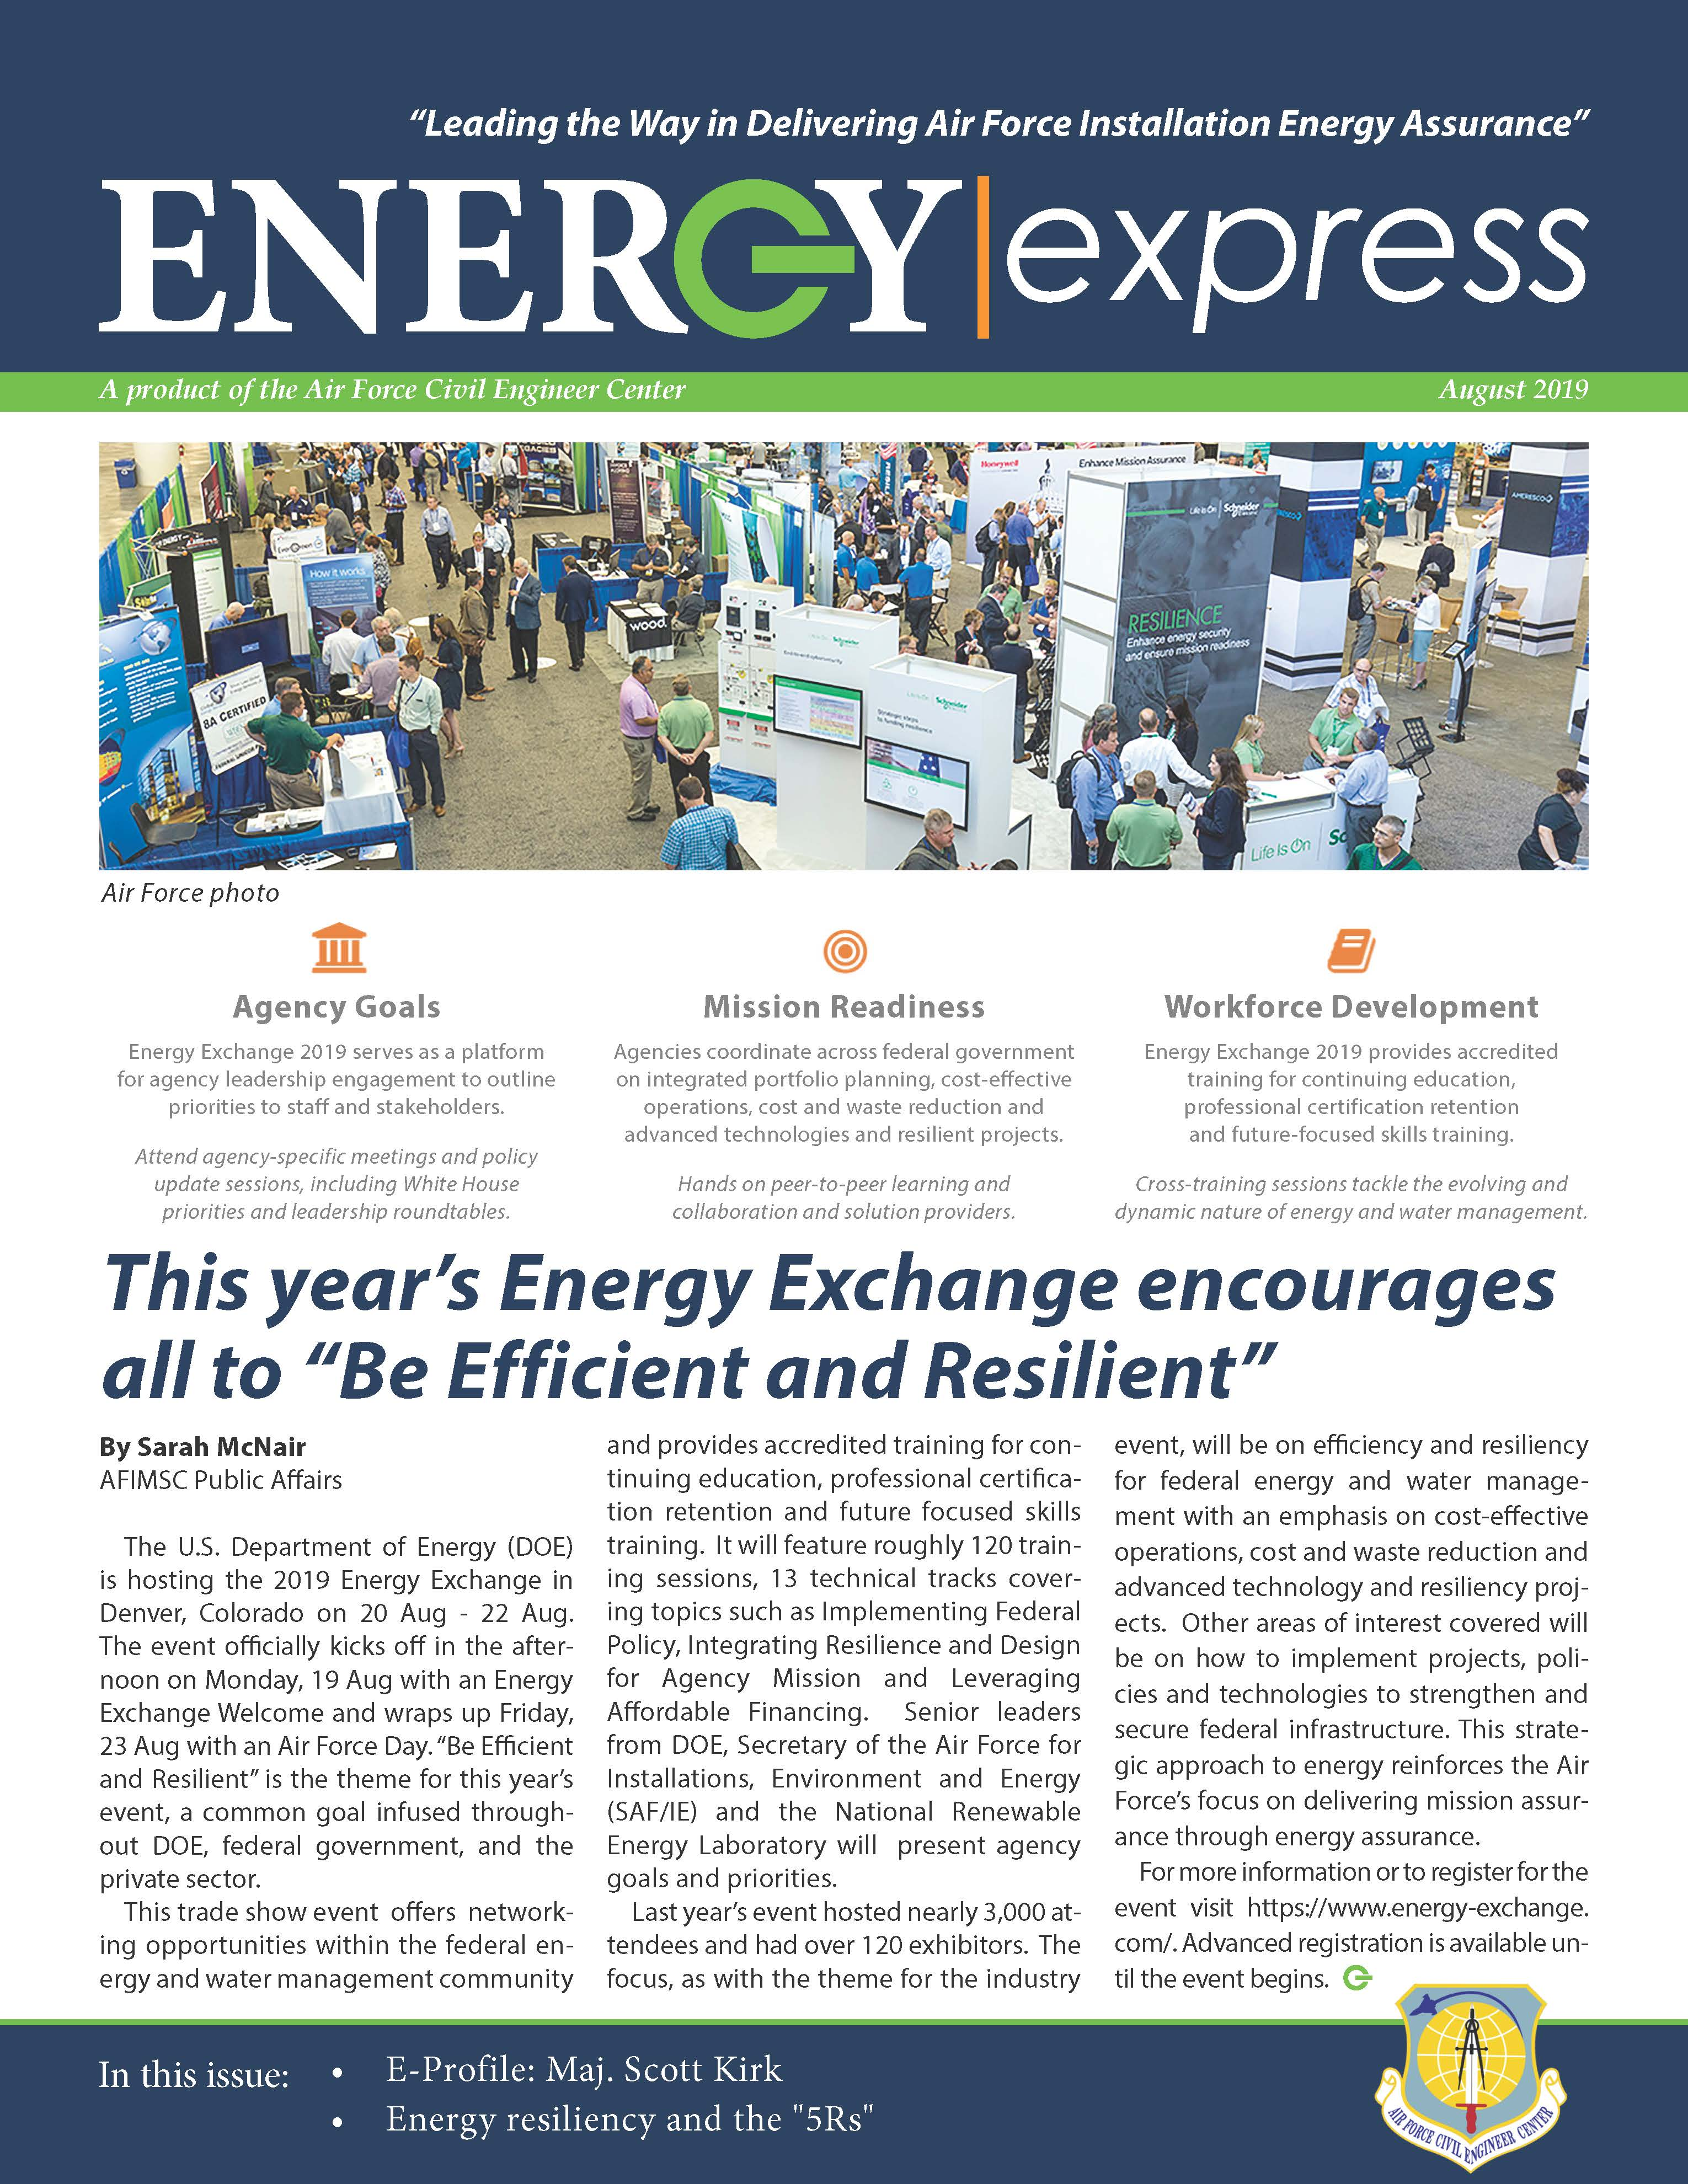 August 2019 Energy Express Cover